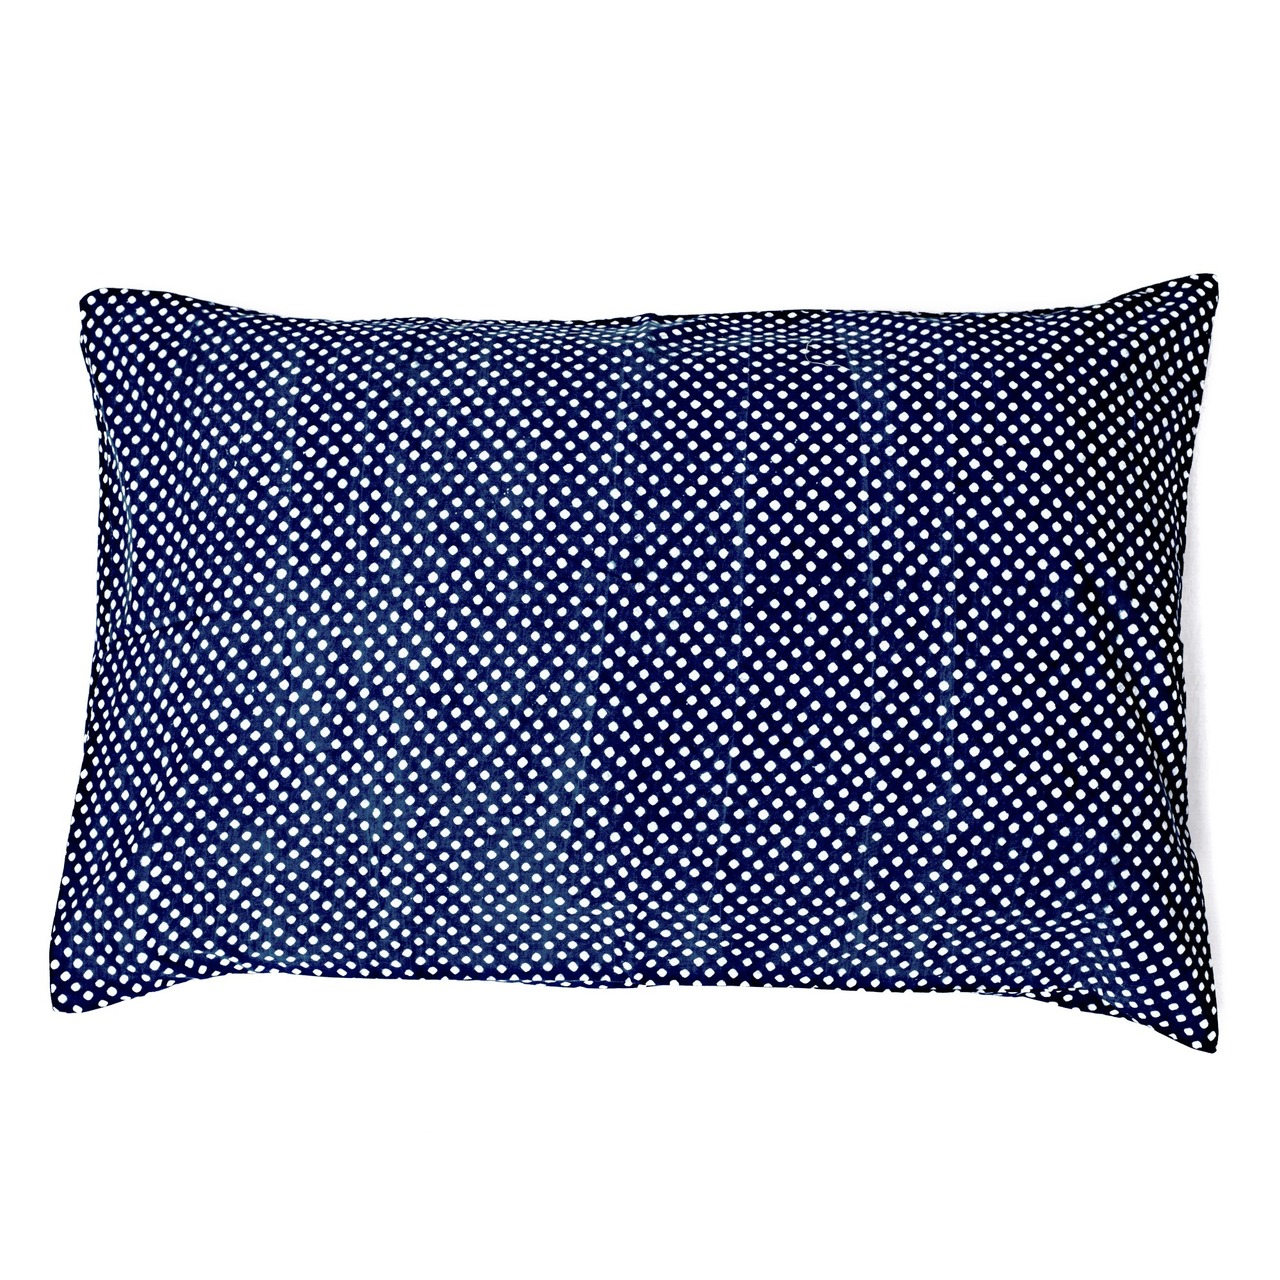 Indigo Dotty Hamptons Pillowcase by Peacocks and Paisley, a Pillow Cases for sale on Style Sourcebook